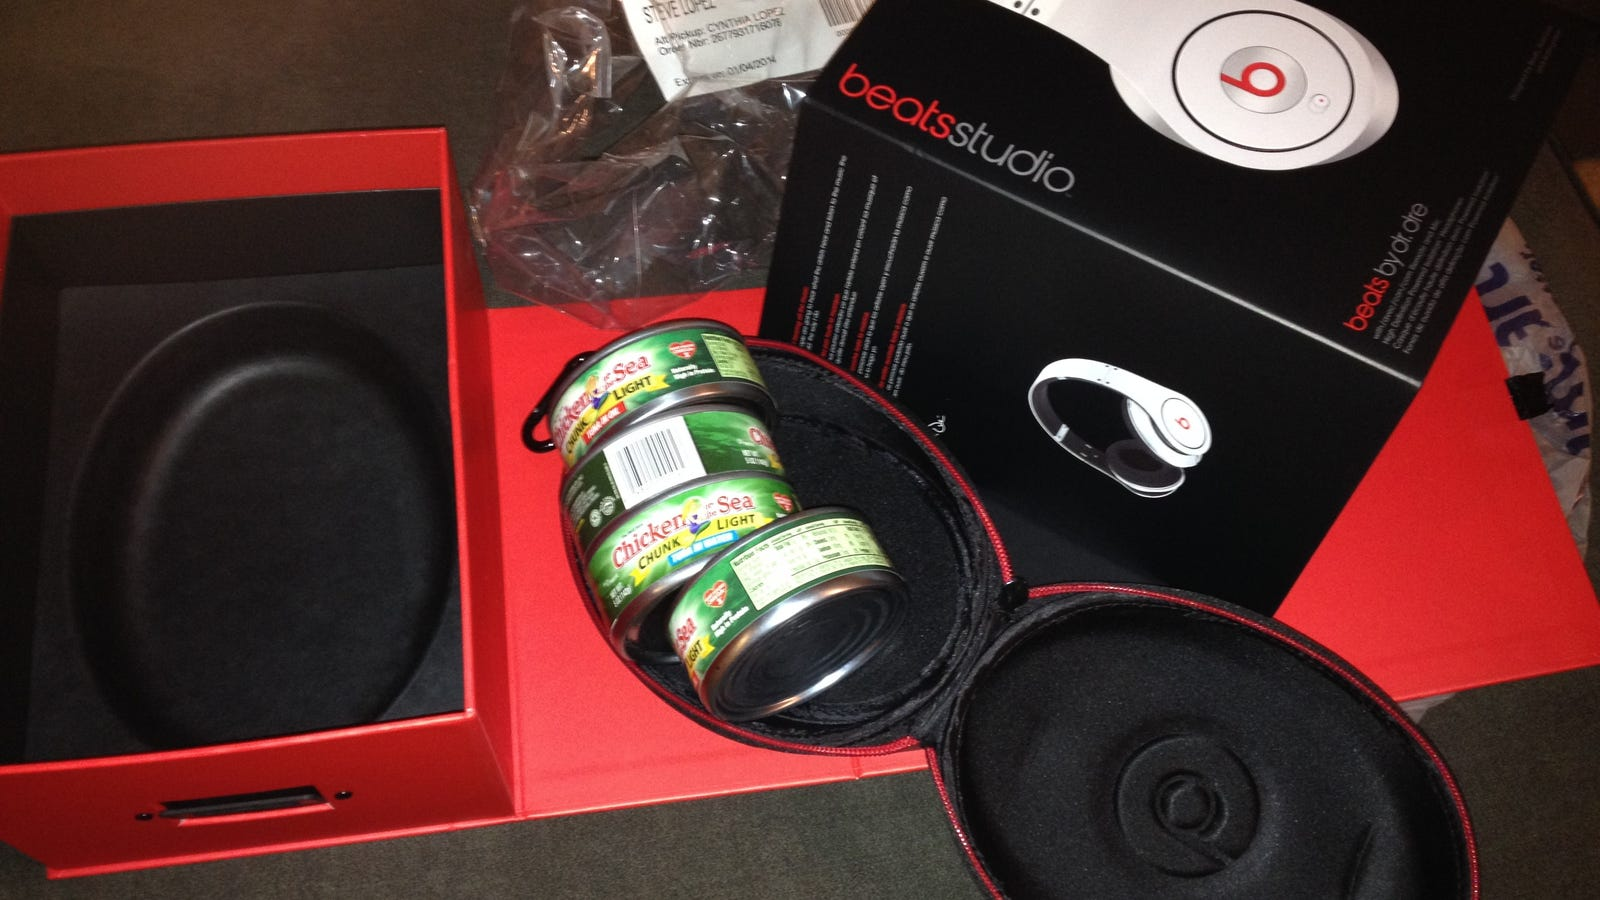 wireless radio headphones - Family Opens Beats Headphones on Christmas, Finds Tuna Instead